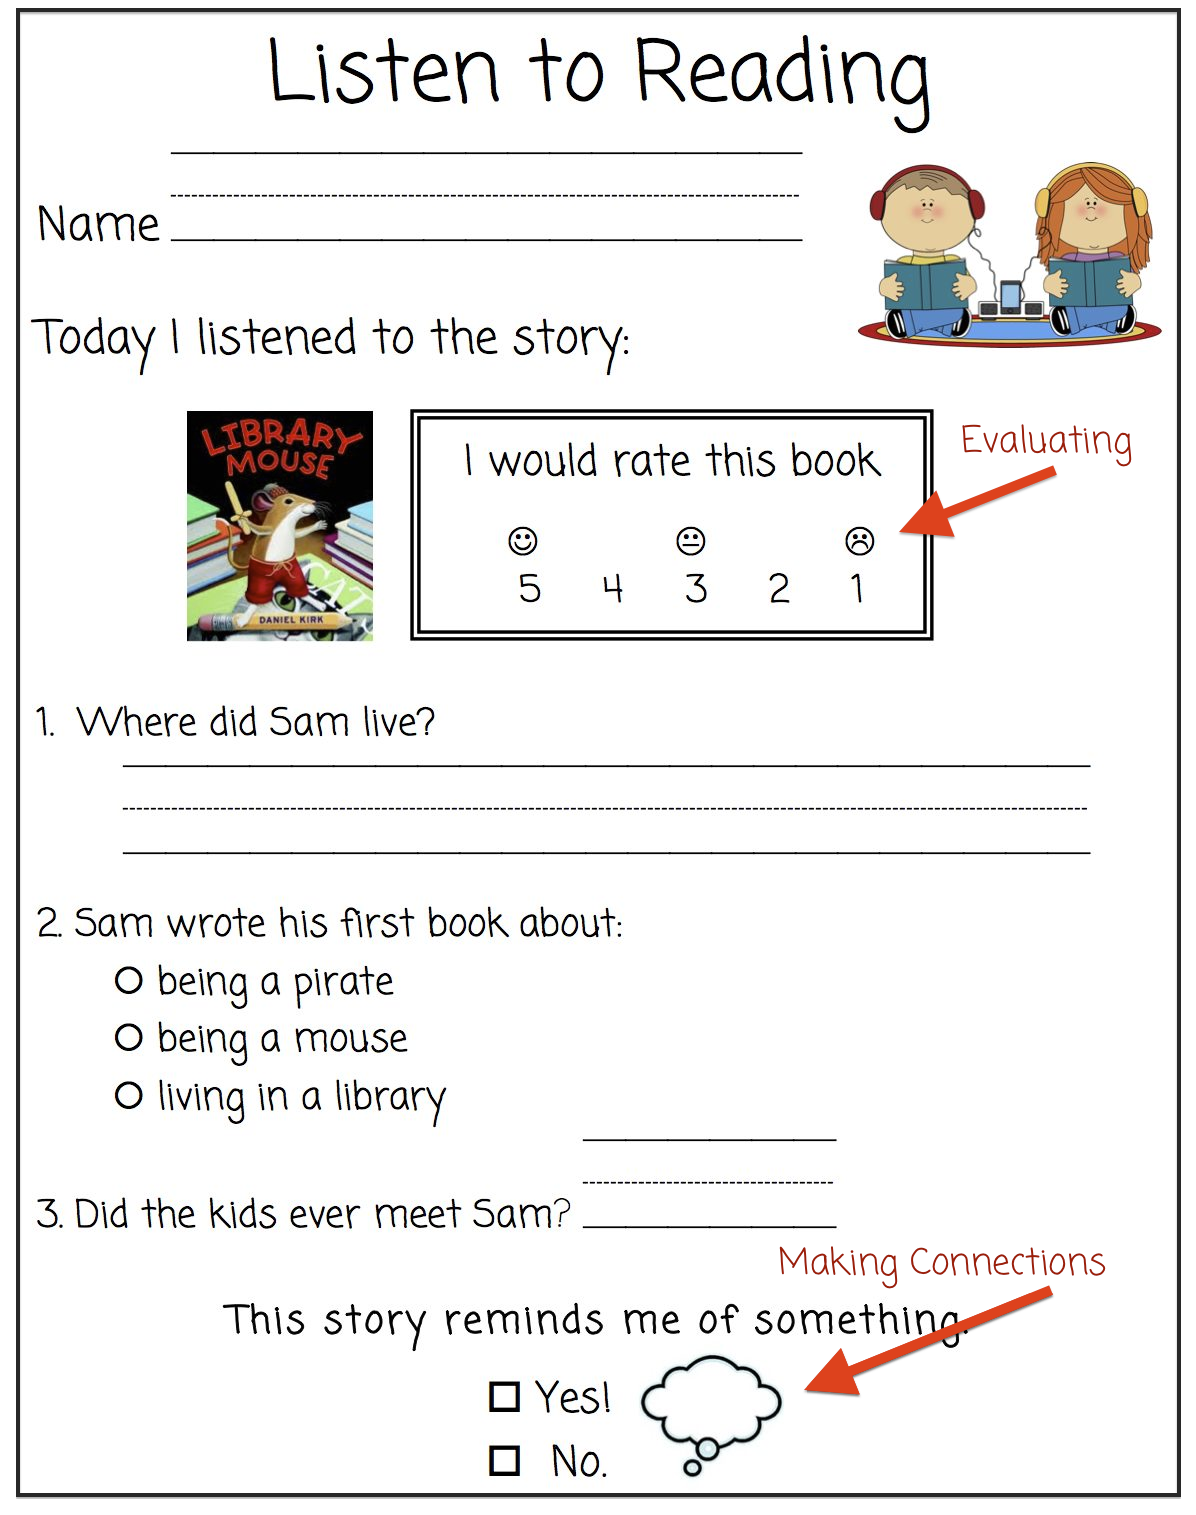 worksheet Making Connections Worksheet the first grade bloom worksheet for listening comprehension i hear you wondering what do kiddos who cant read questions there are 2 solutions students help each other if th